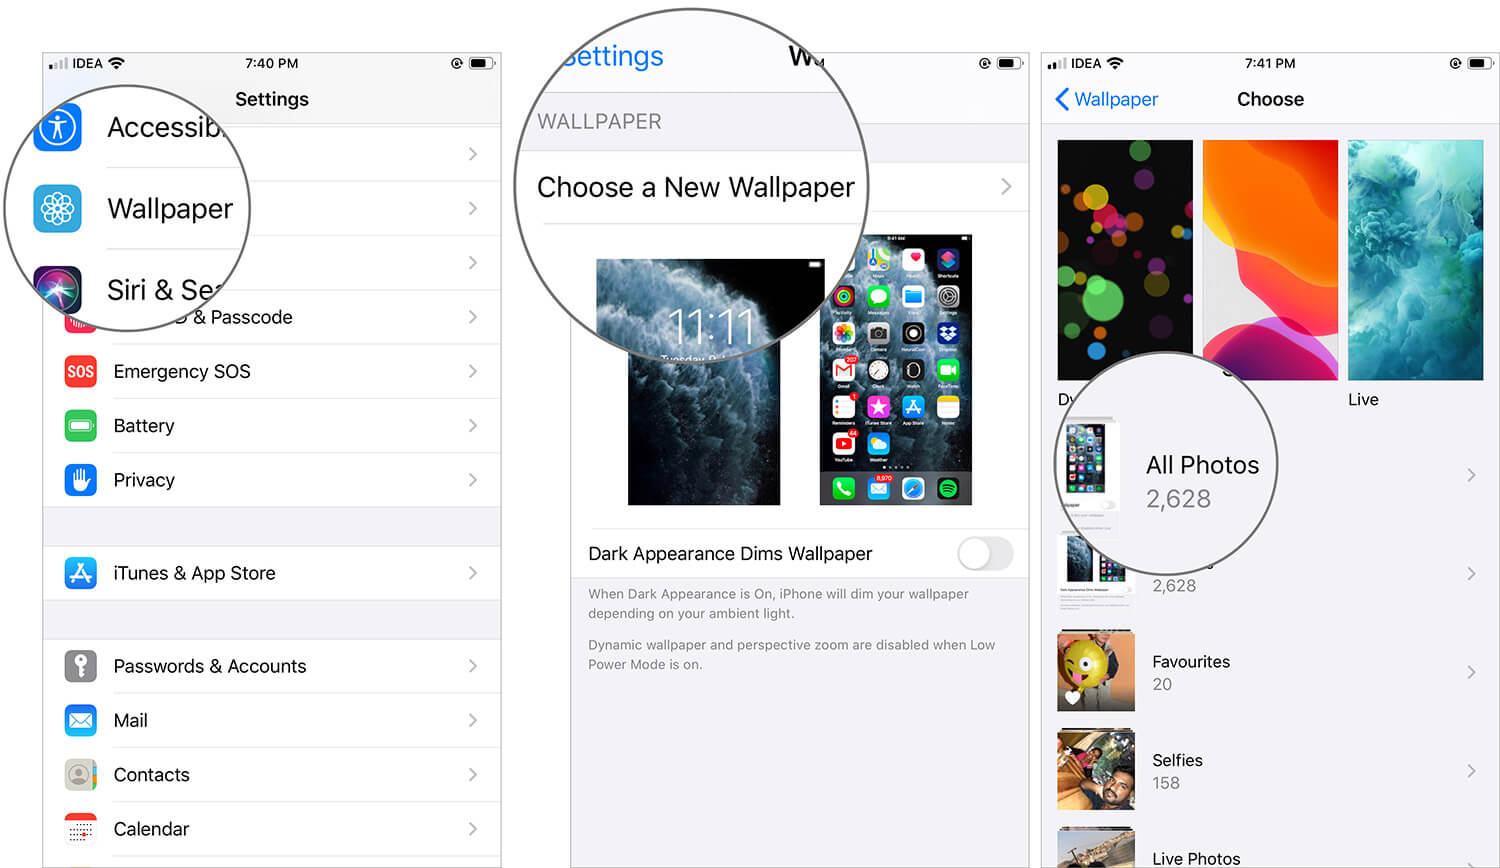 Open Settings App and Choose Your Wallpaper on iPhone